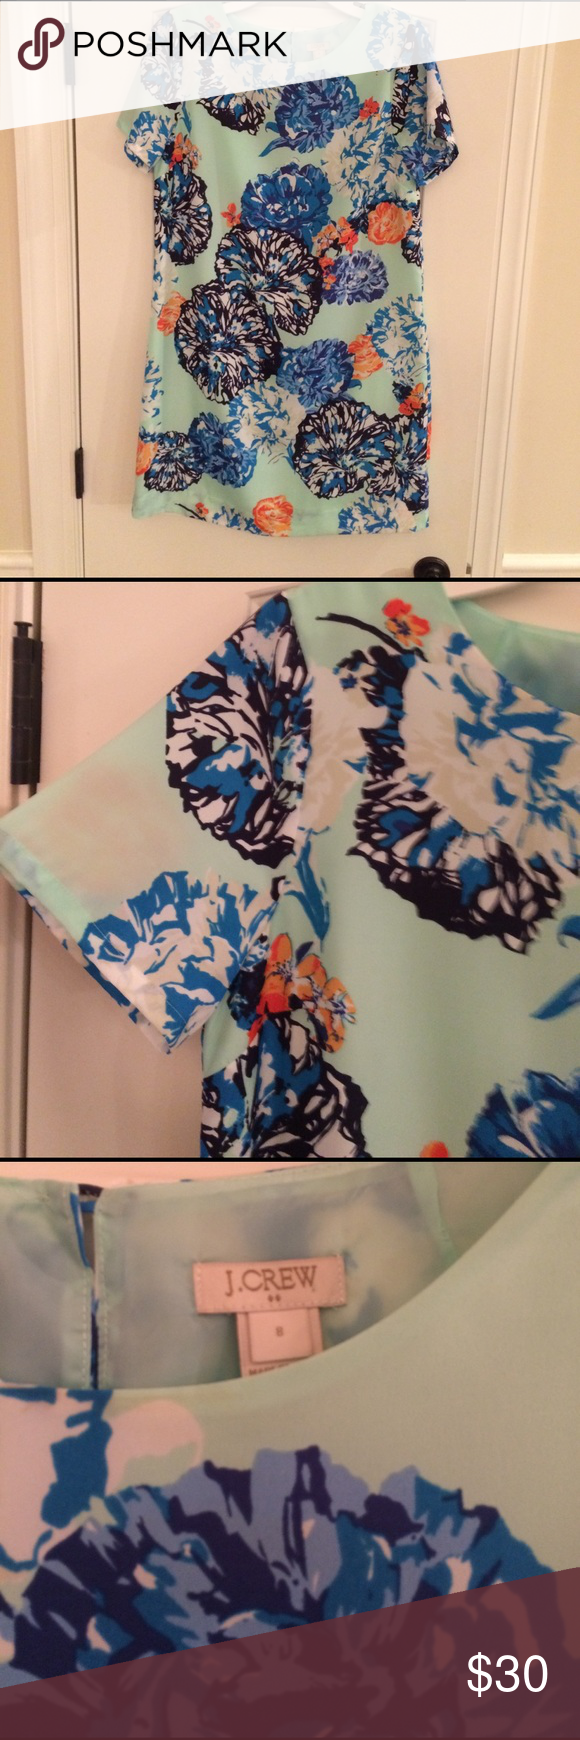 Floral shift dress Mint colored floral shift dress. Keyhole open at back with button detail J. Crew Dresses